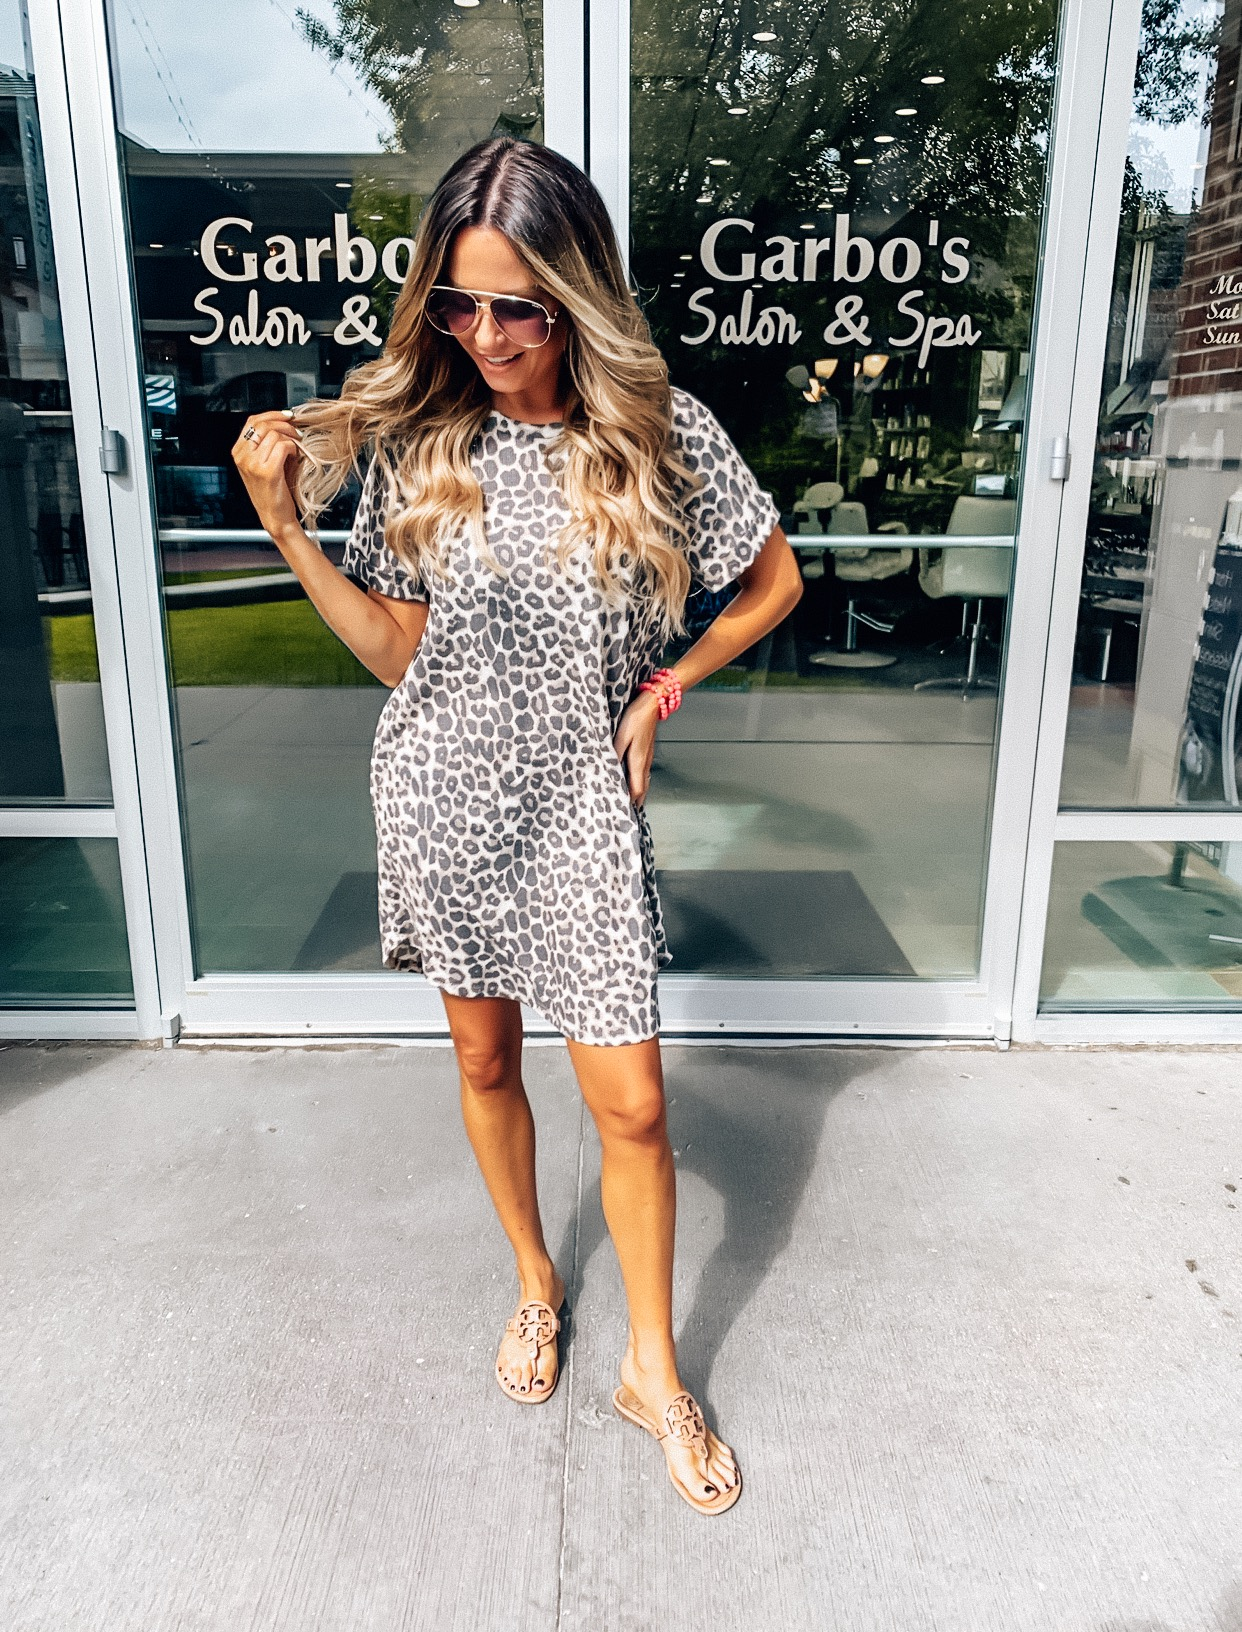 hand-tied extensions-garbo's-garbo's Omaha-garbo's village pointe-before and after-hair goals-hair transformation-hair before and after-sabby style-omaha blogger-5